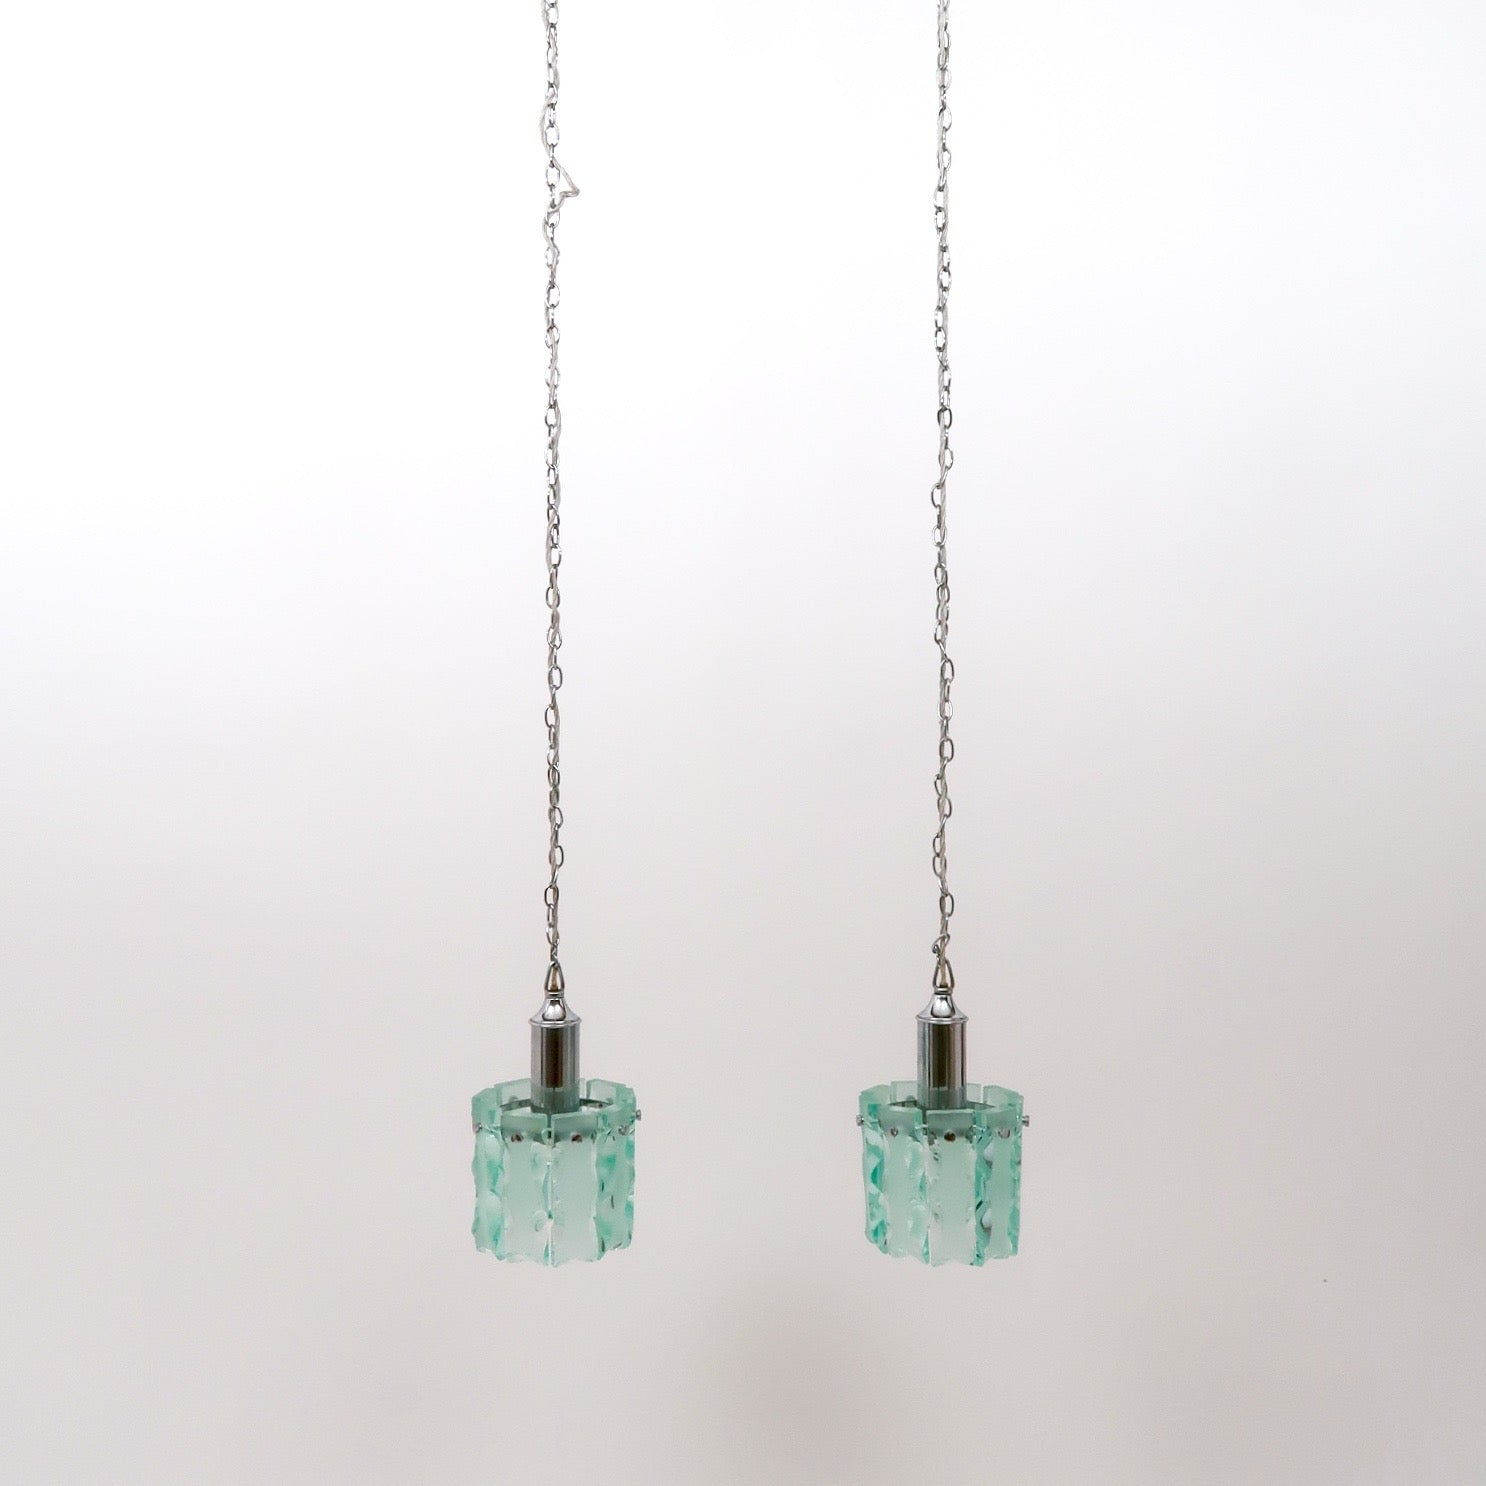 Pair of vintage Italian 1970's chiseled glass pendant lights .